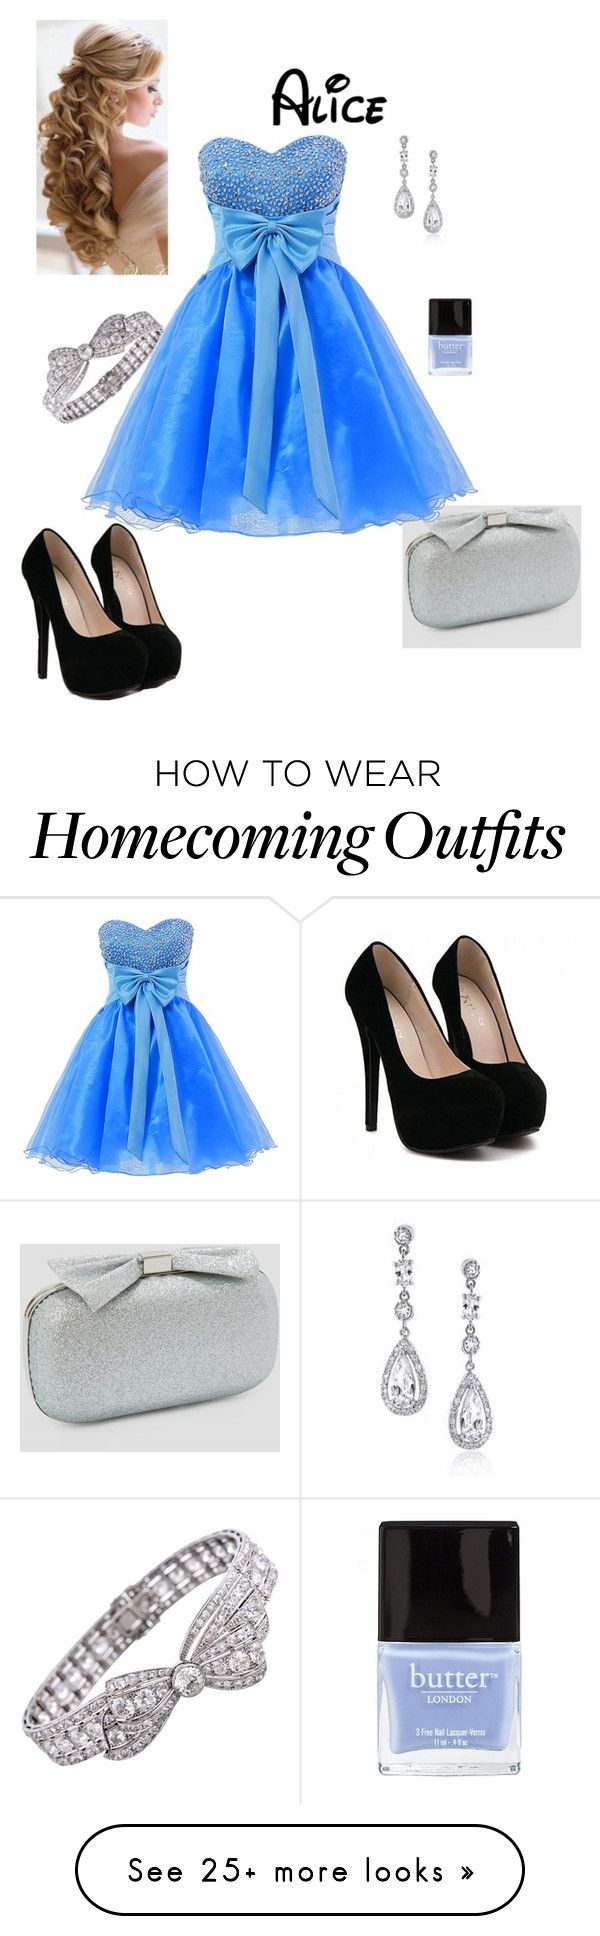 """""""Disney Prom - Alice"""" by briony-jae on Polyvore featuring Ashley Stewart, Bling Jewelry, Butter London, women's clothing, women's fashion, women, female, woman, misses and juniors"""